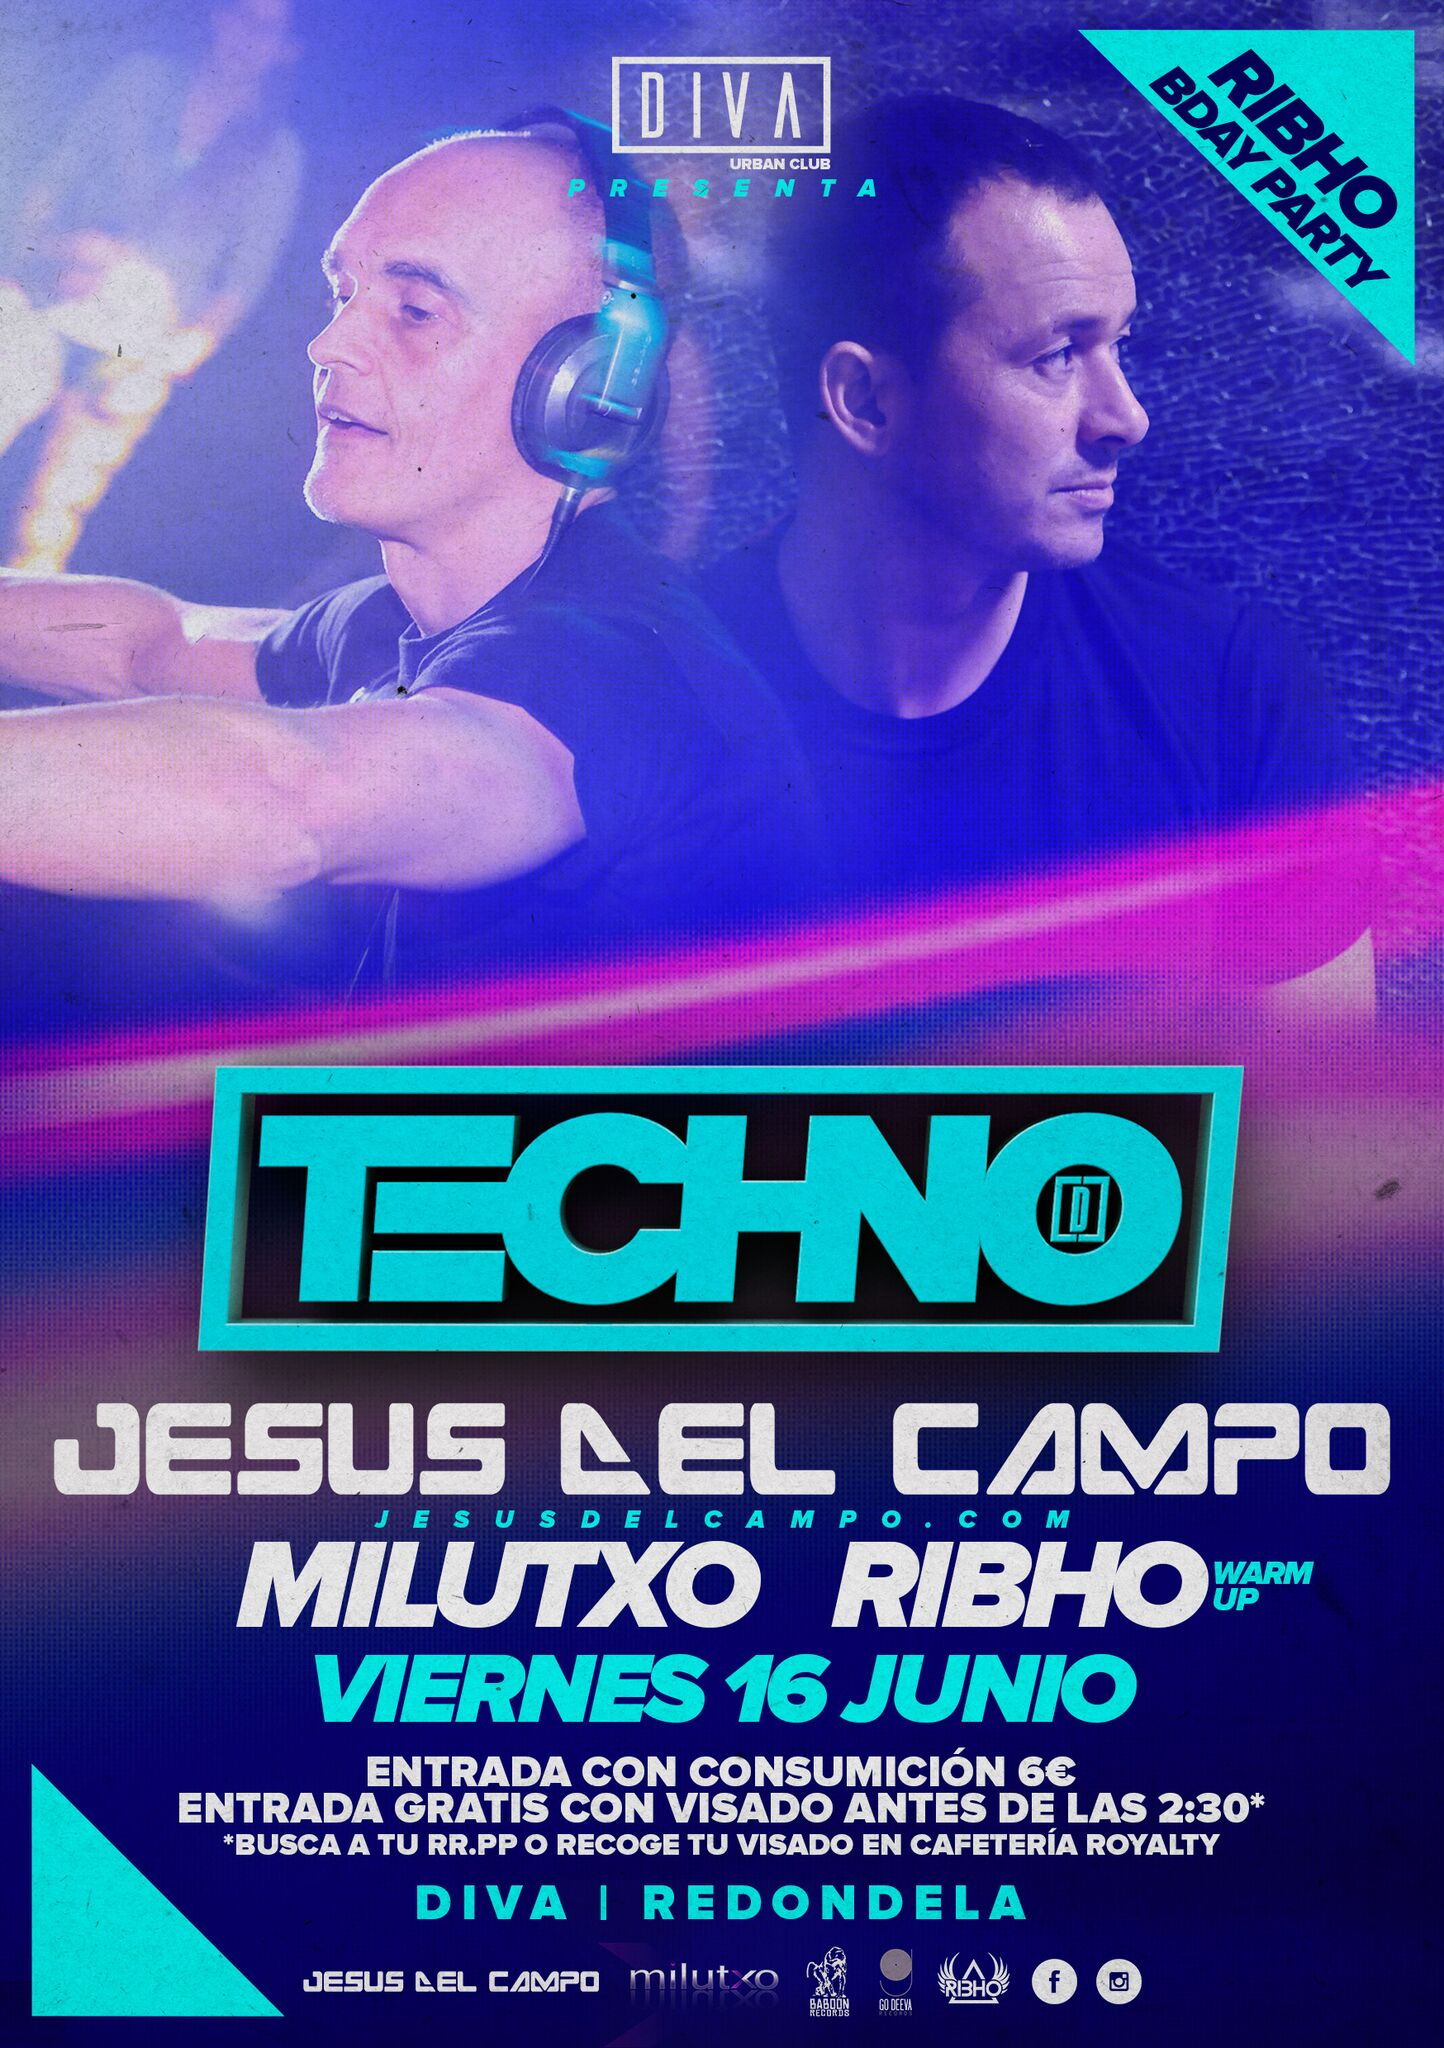 flyer Diva 16 jun 2017 jesus del campo